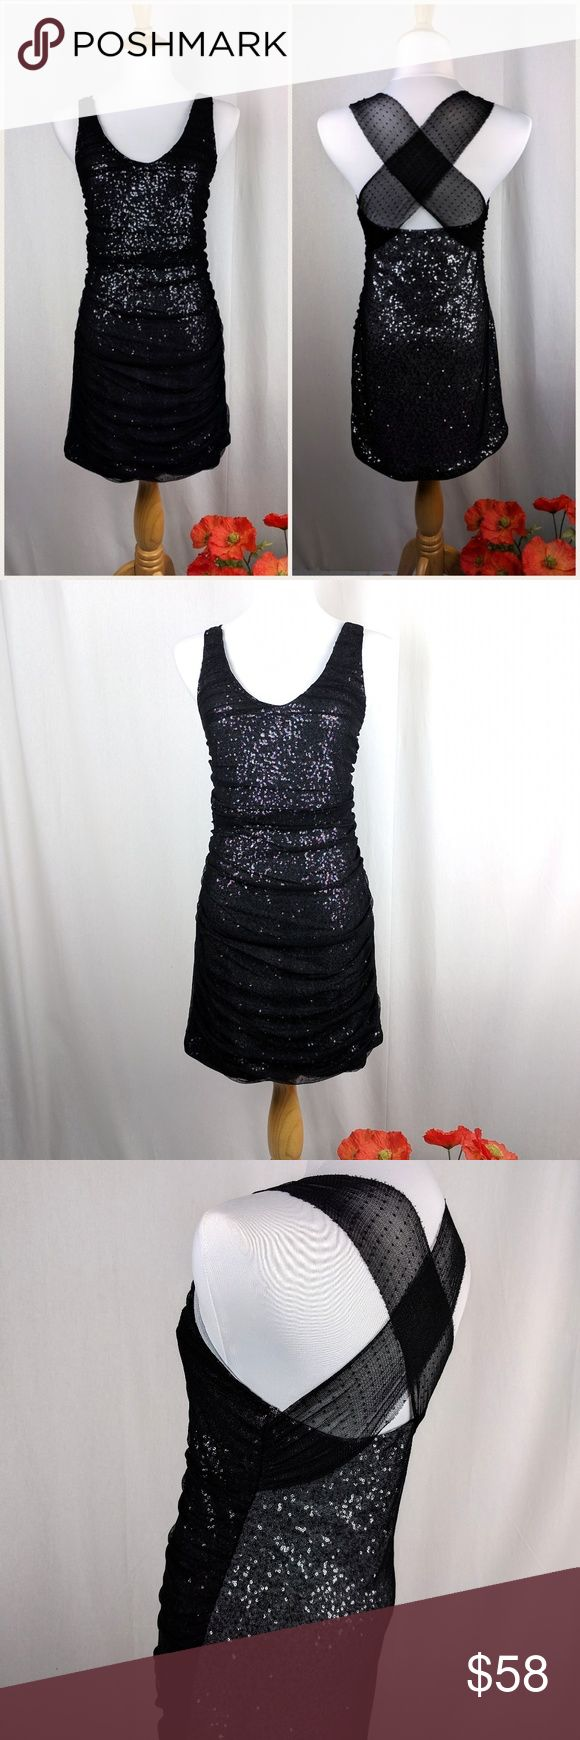 "Express Sequin Polka Dot Mesh Cocktail Dress M Express Sequin Polka Dot Mesh Cocktail Dress. Size Medium. Silver sequin with gathered polka dot mesh draped over the front in a double layer, single layer over back. Criss Cross mesh back. Bodycon fit. Very stretchy. Fully lined. Length- 32"" Bust- 34"" Waist- 32"" Excellent condition. No trades, offers welcome! Bundle to save! Express Dresses Mini"